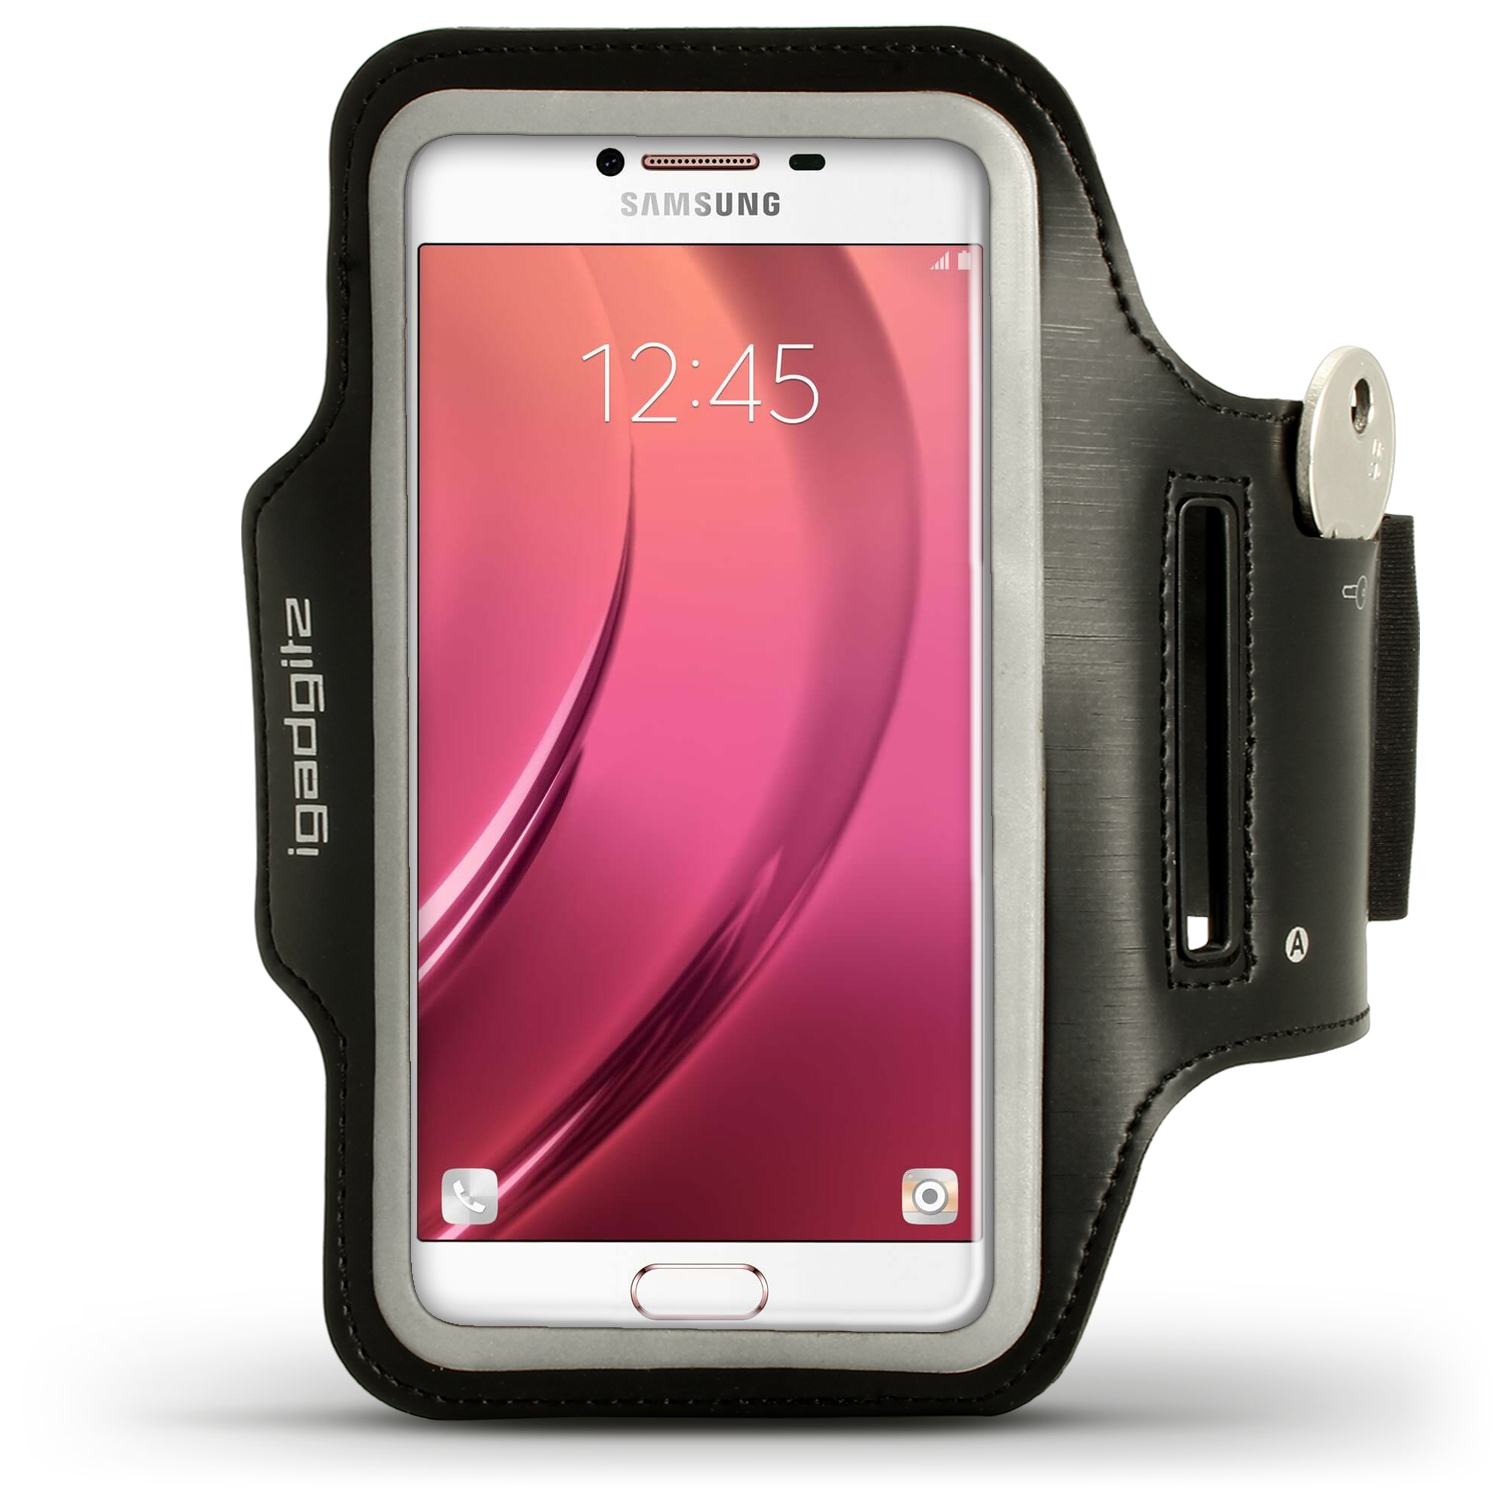 iGadgitz Reflective Black Sports Jogging Gym Armband for Samsung Galaxy C5 SM-C5000 (2016) with Key Slot